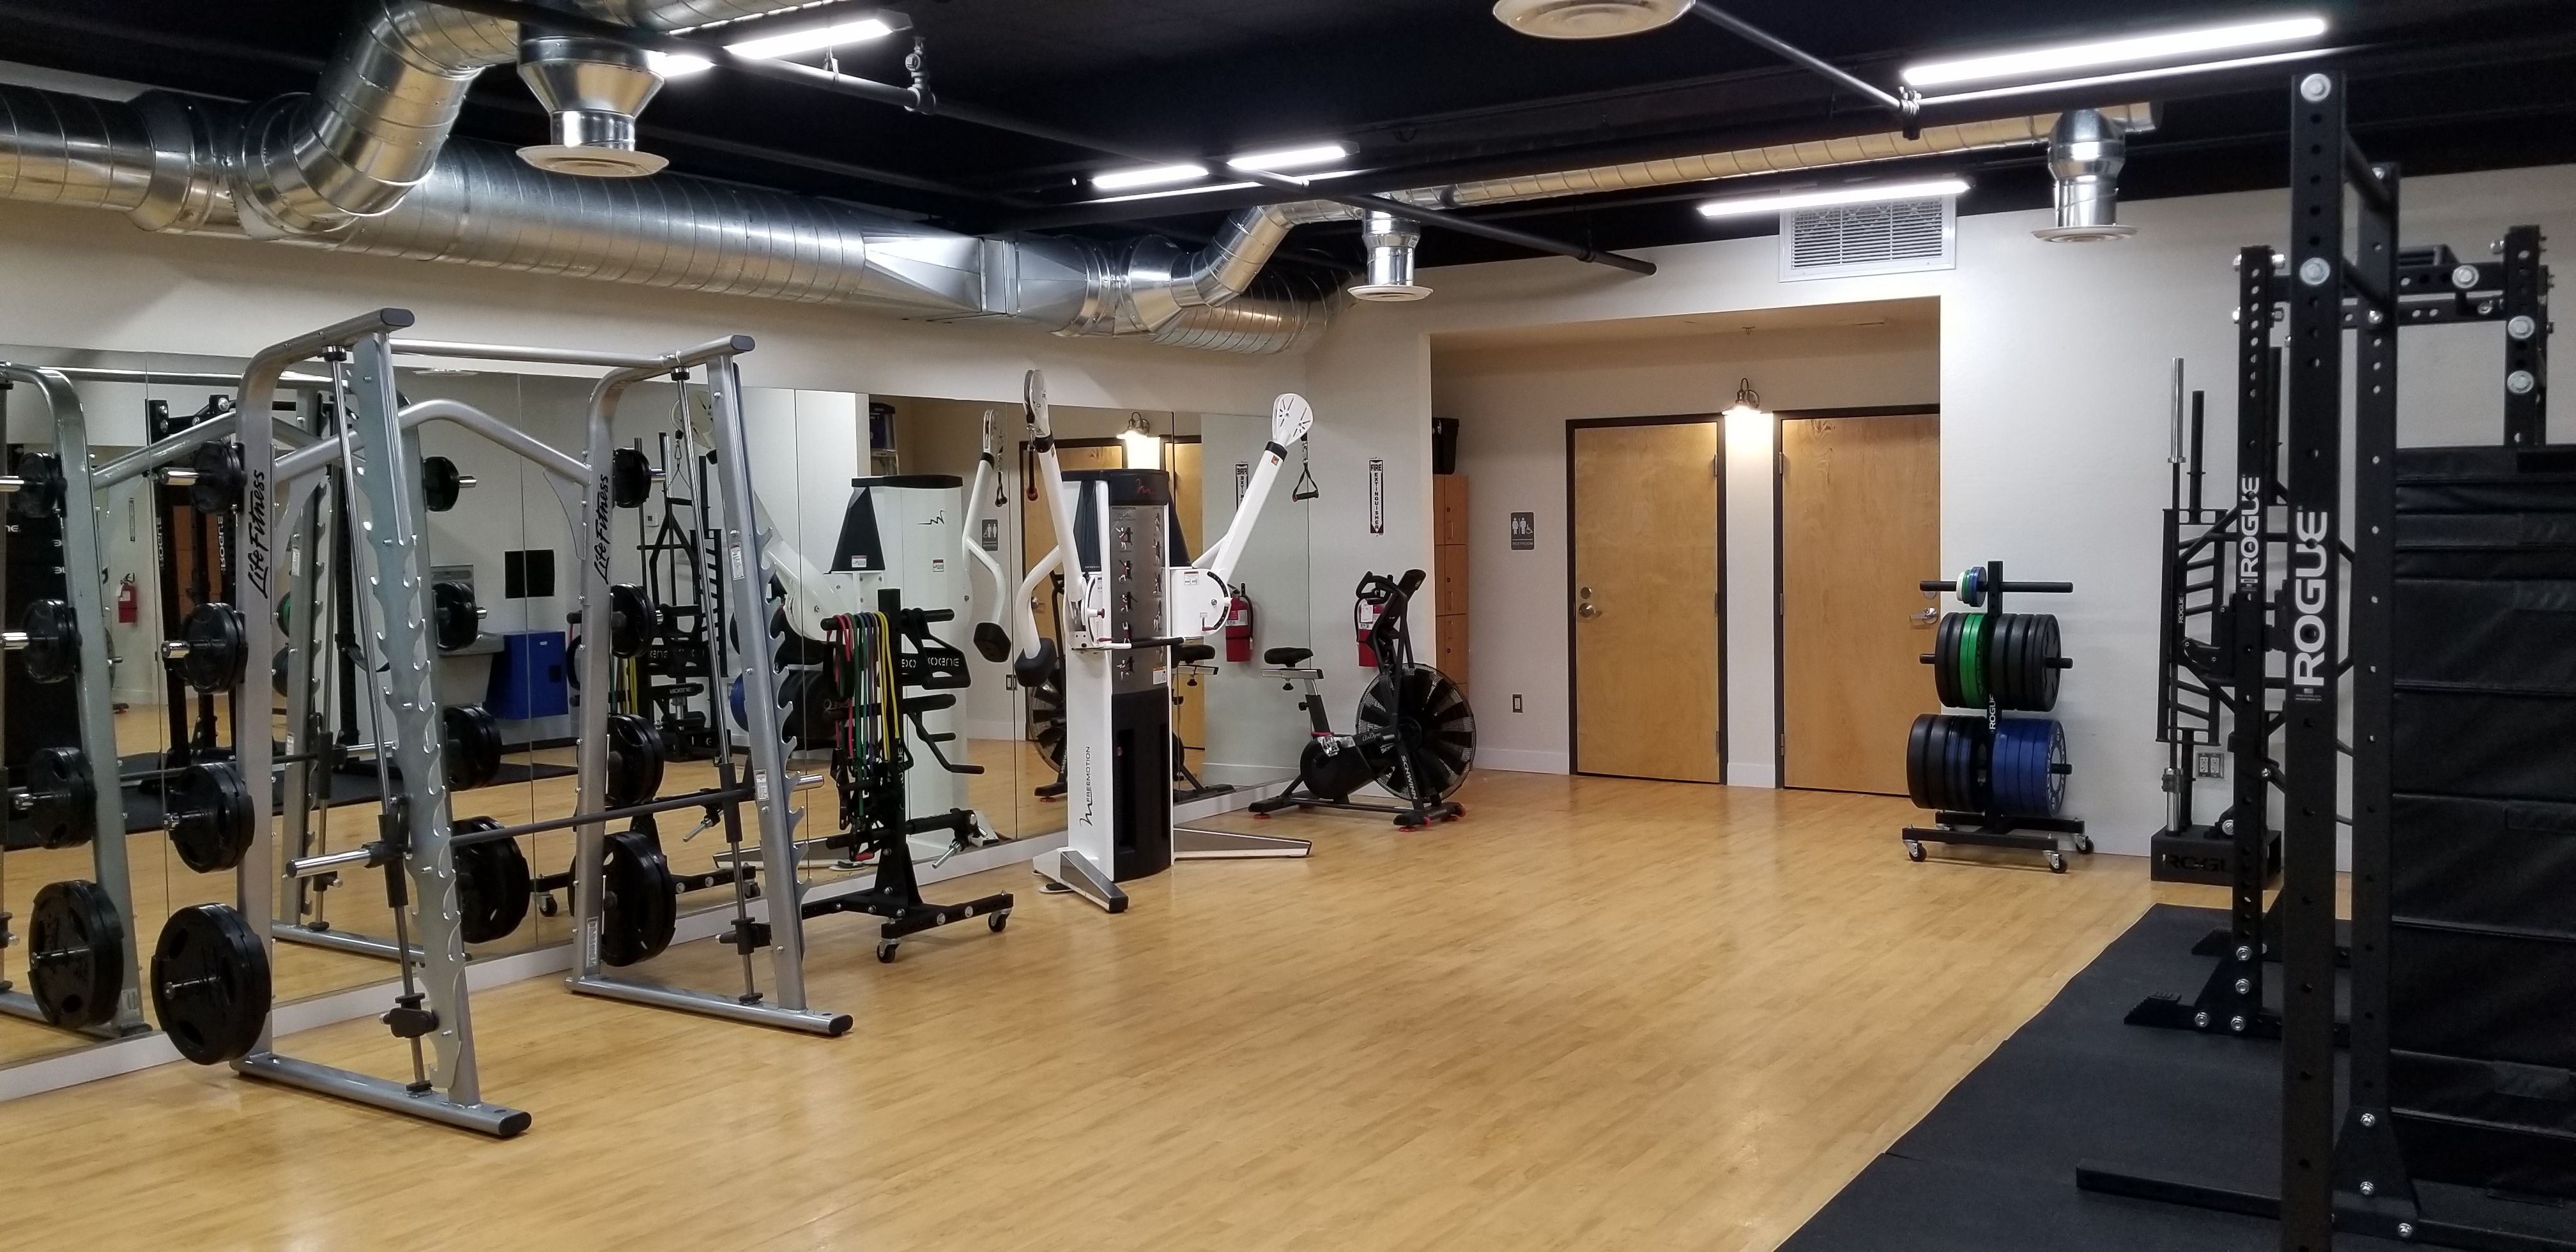 Getting You Fit Studios Scottsdale Az Click To Rent By The Hour Getgymspace Findfitnessspace Personal Training Studio Fitness Studio